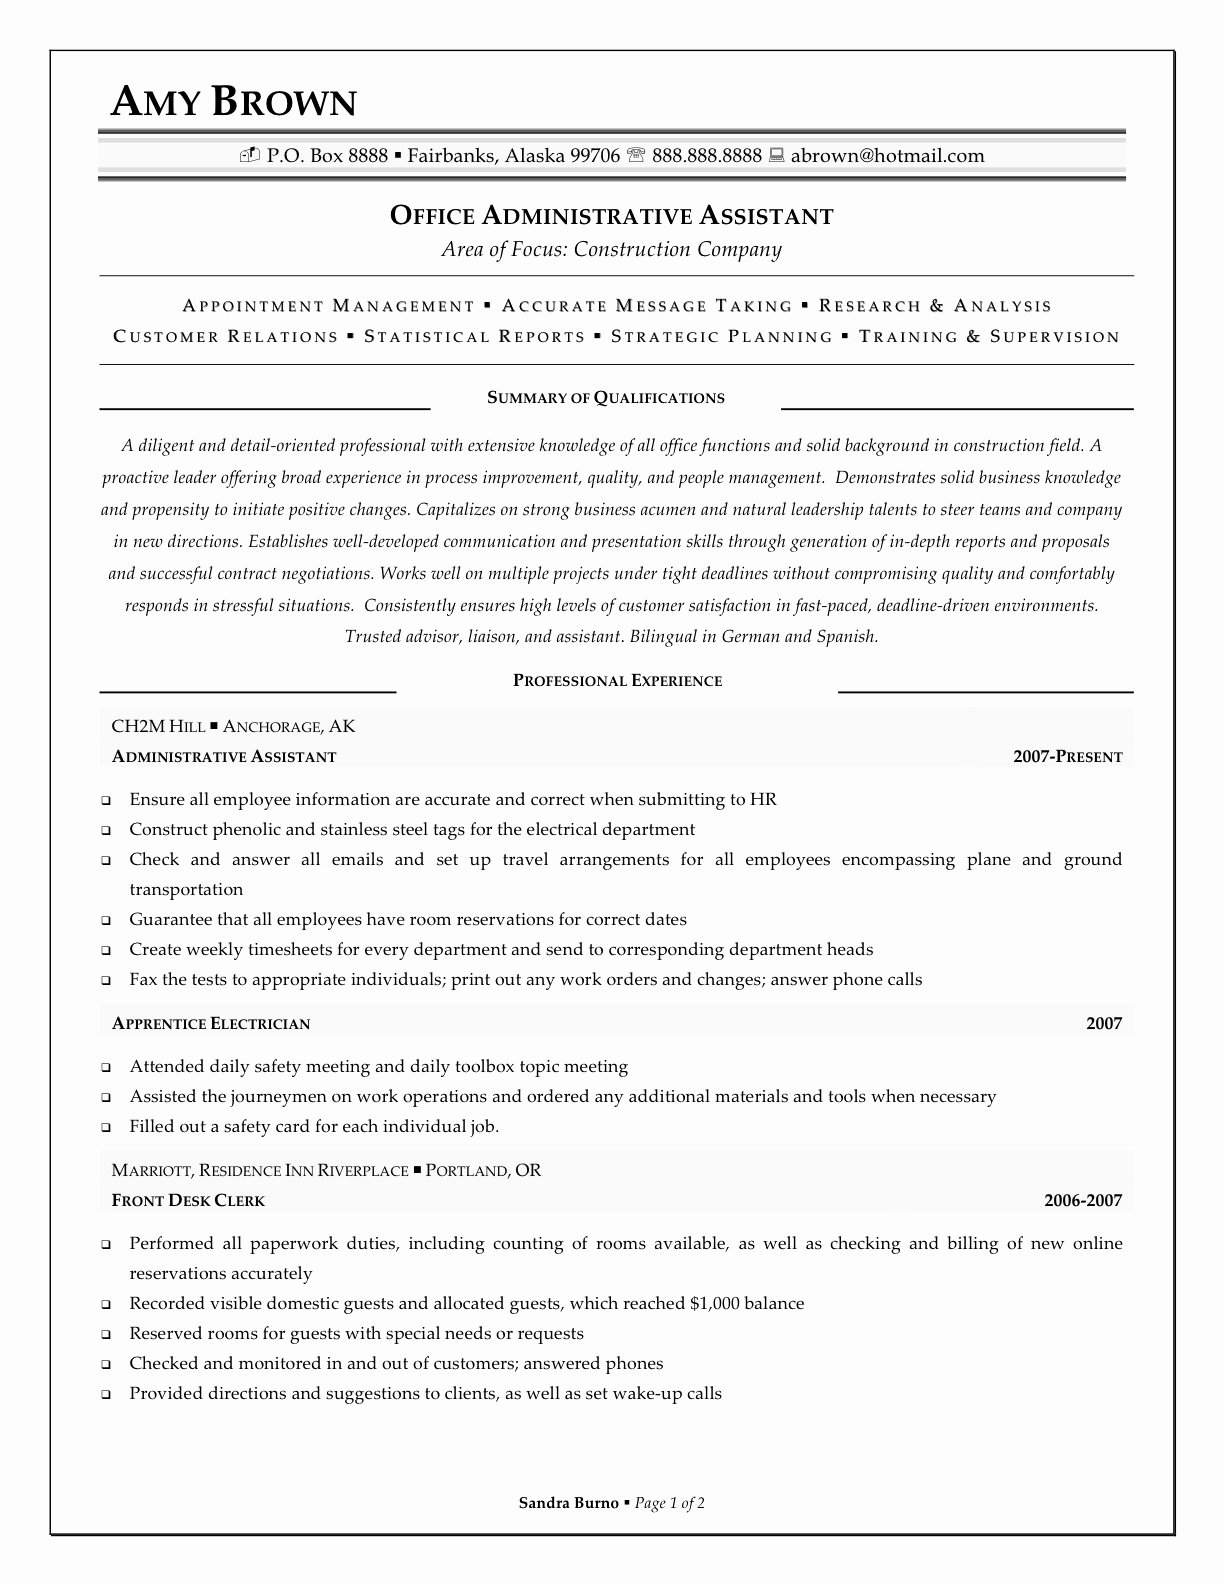 Office assistant Resume Template Best Of Professional Fice assistant Resume